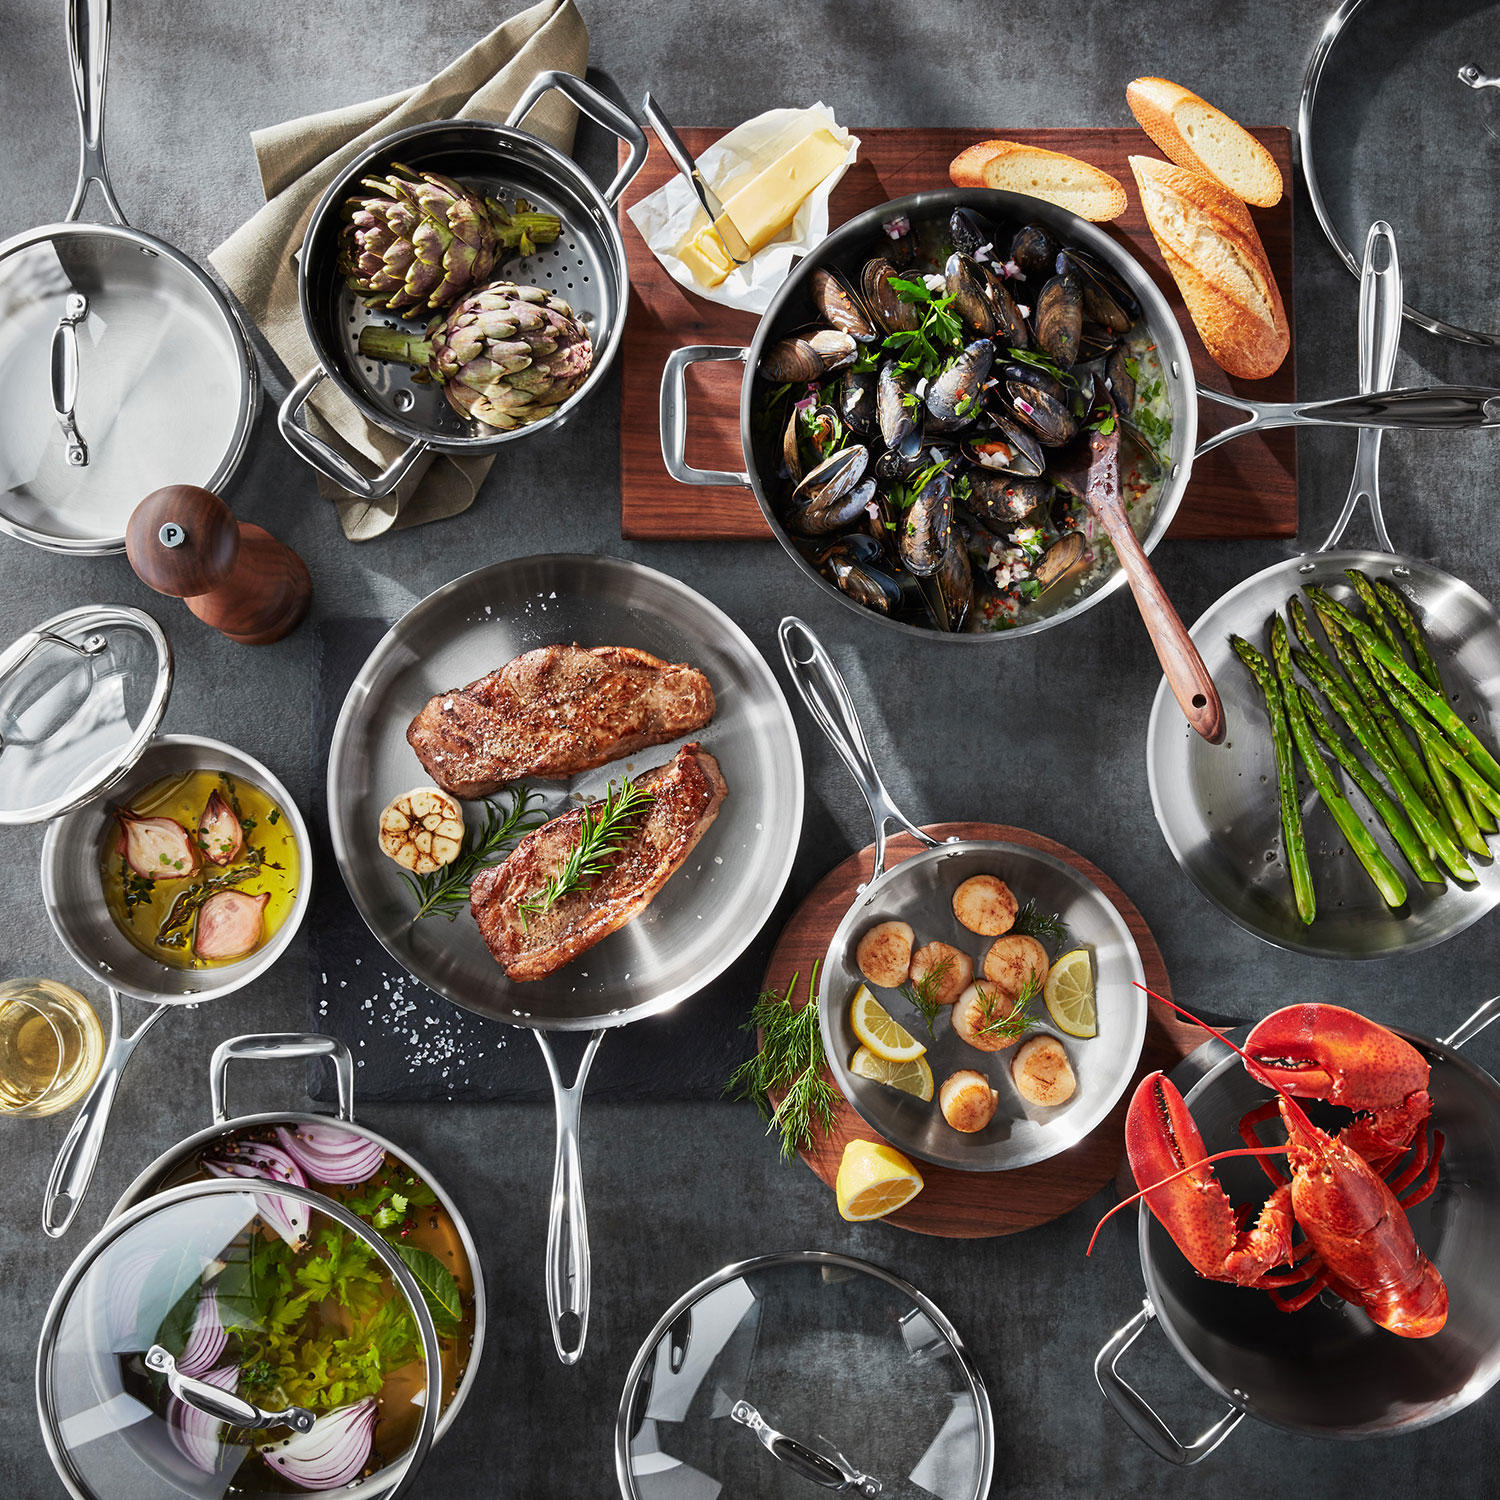 Tramontina 14-Piece Tri-Ply Clad Stainless Steel Cookware Set with Glass Lids